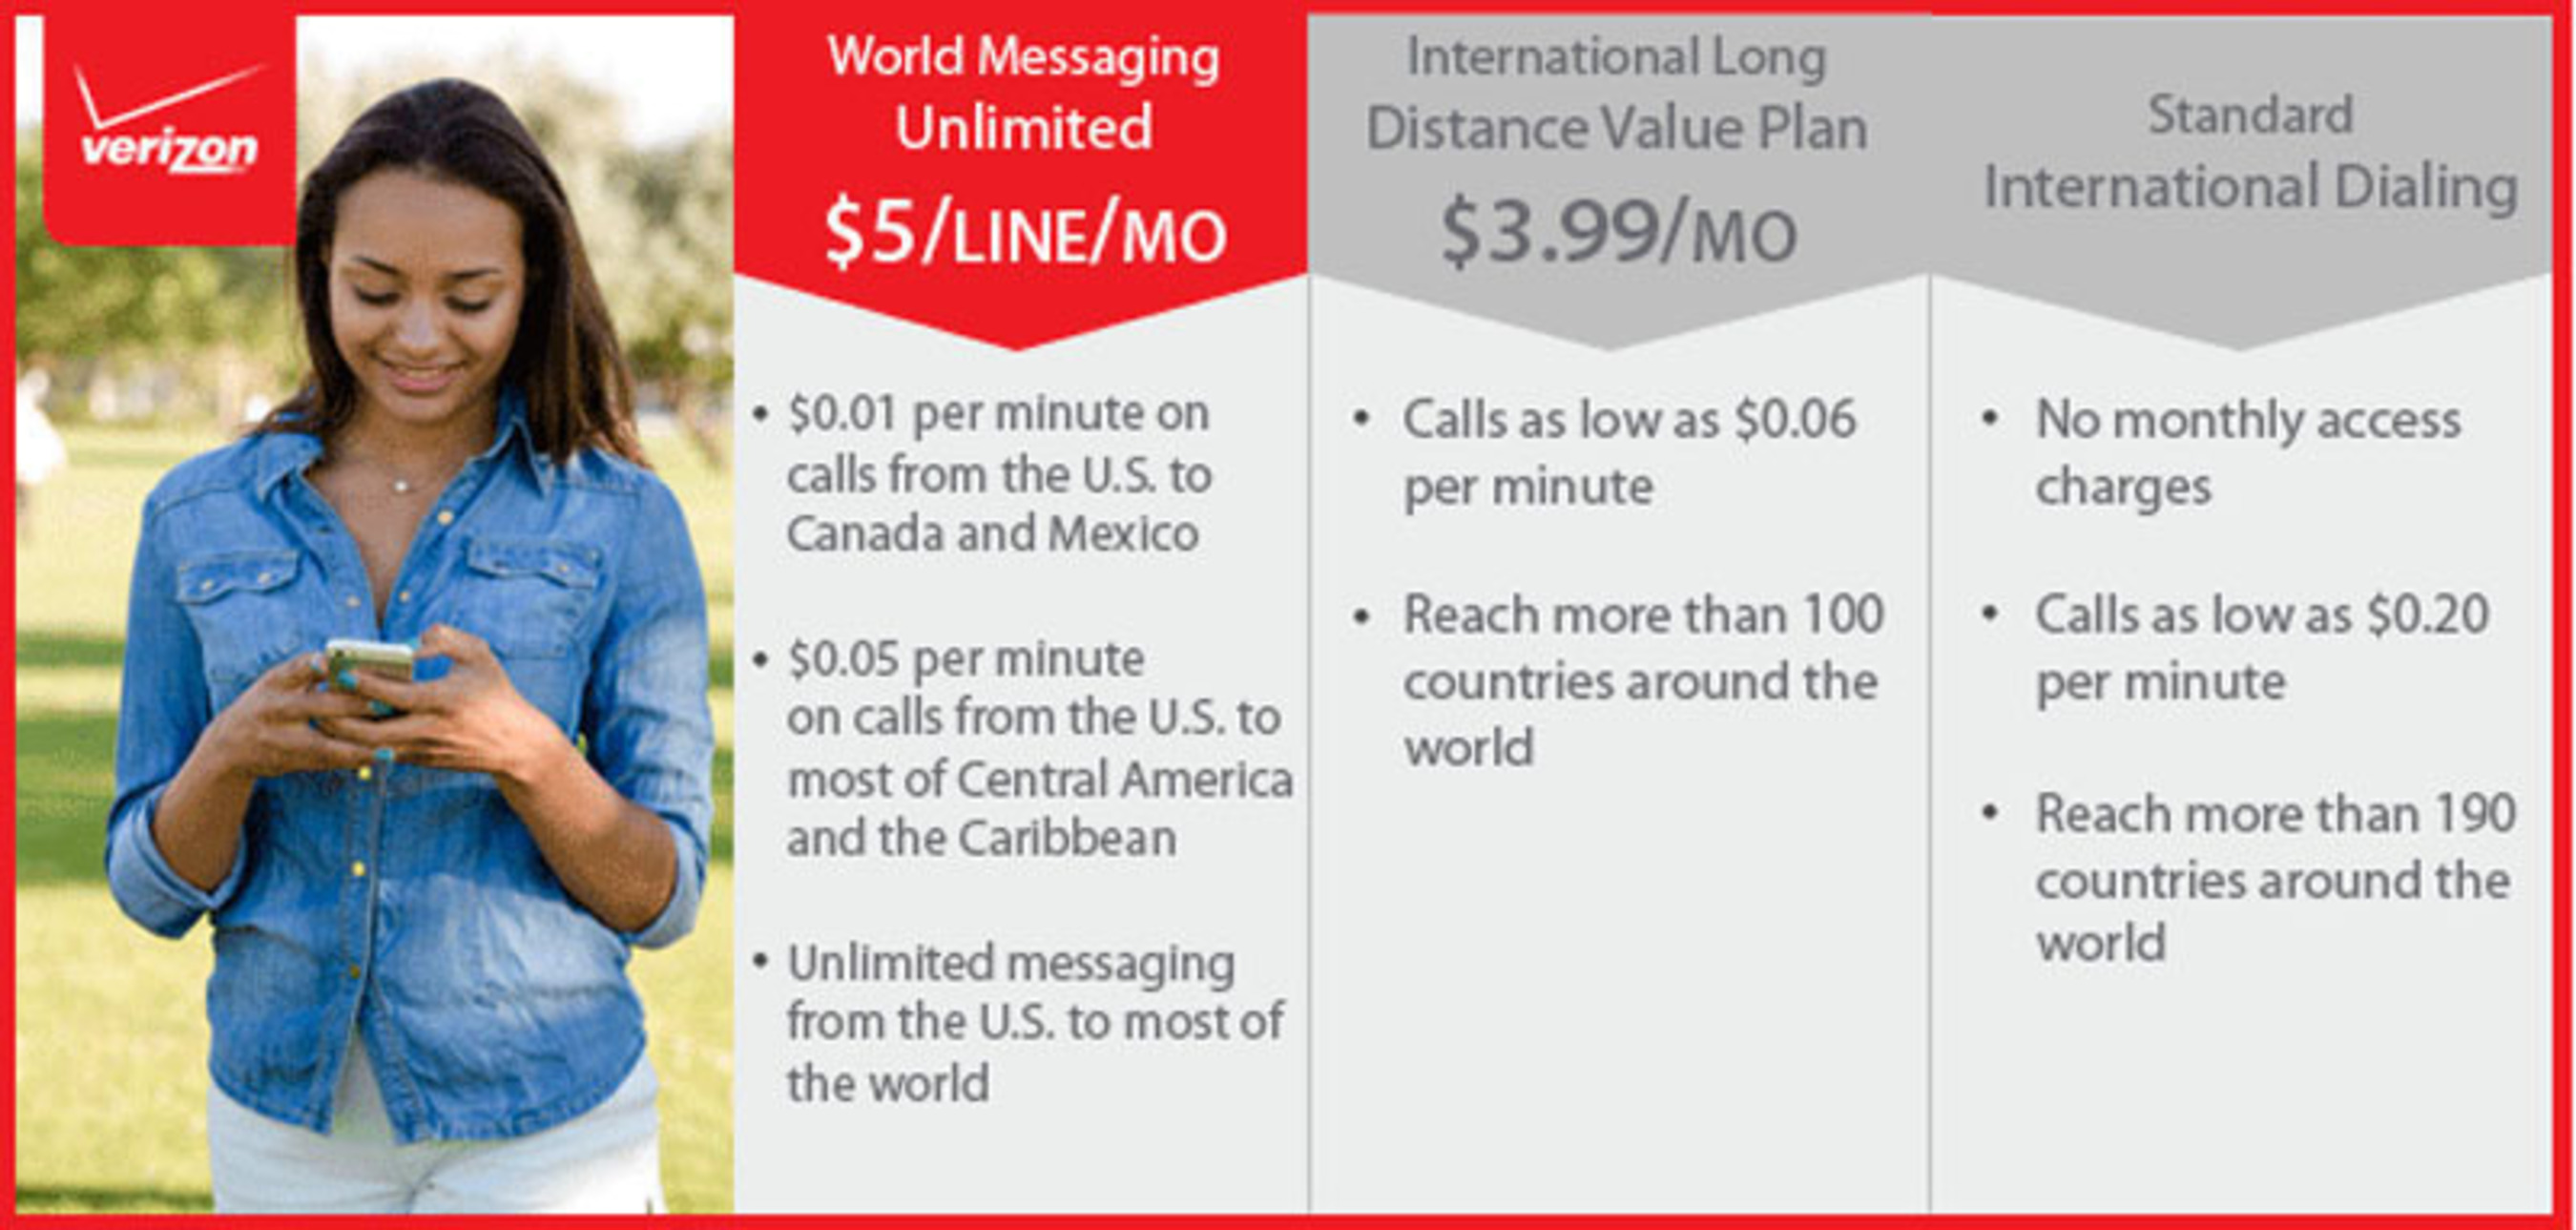 Verizon Wireless' World Messaging Unlimited promotion makes it easier for customers to connect and save on ...